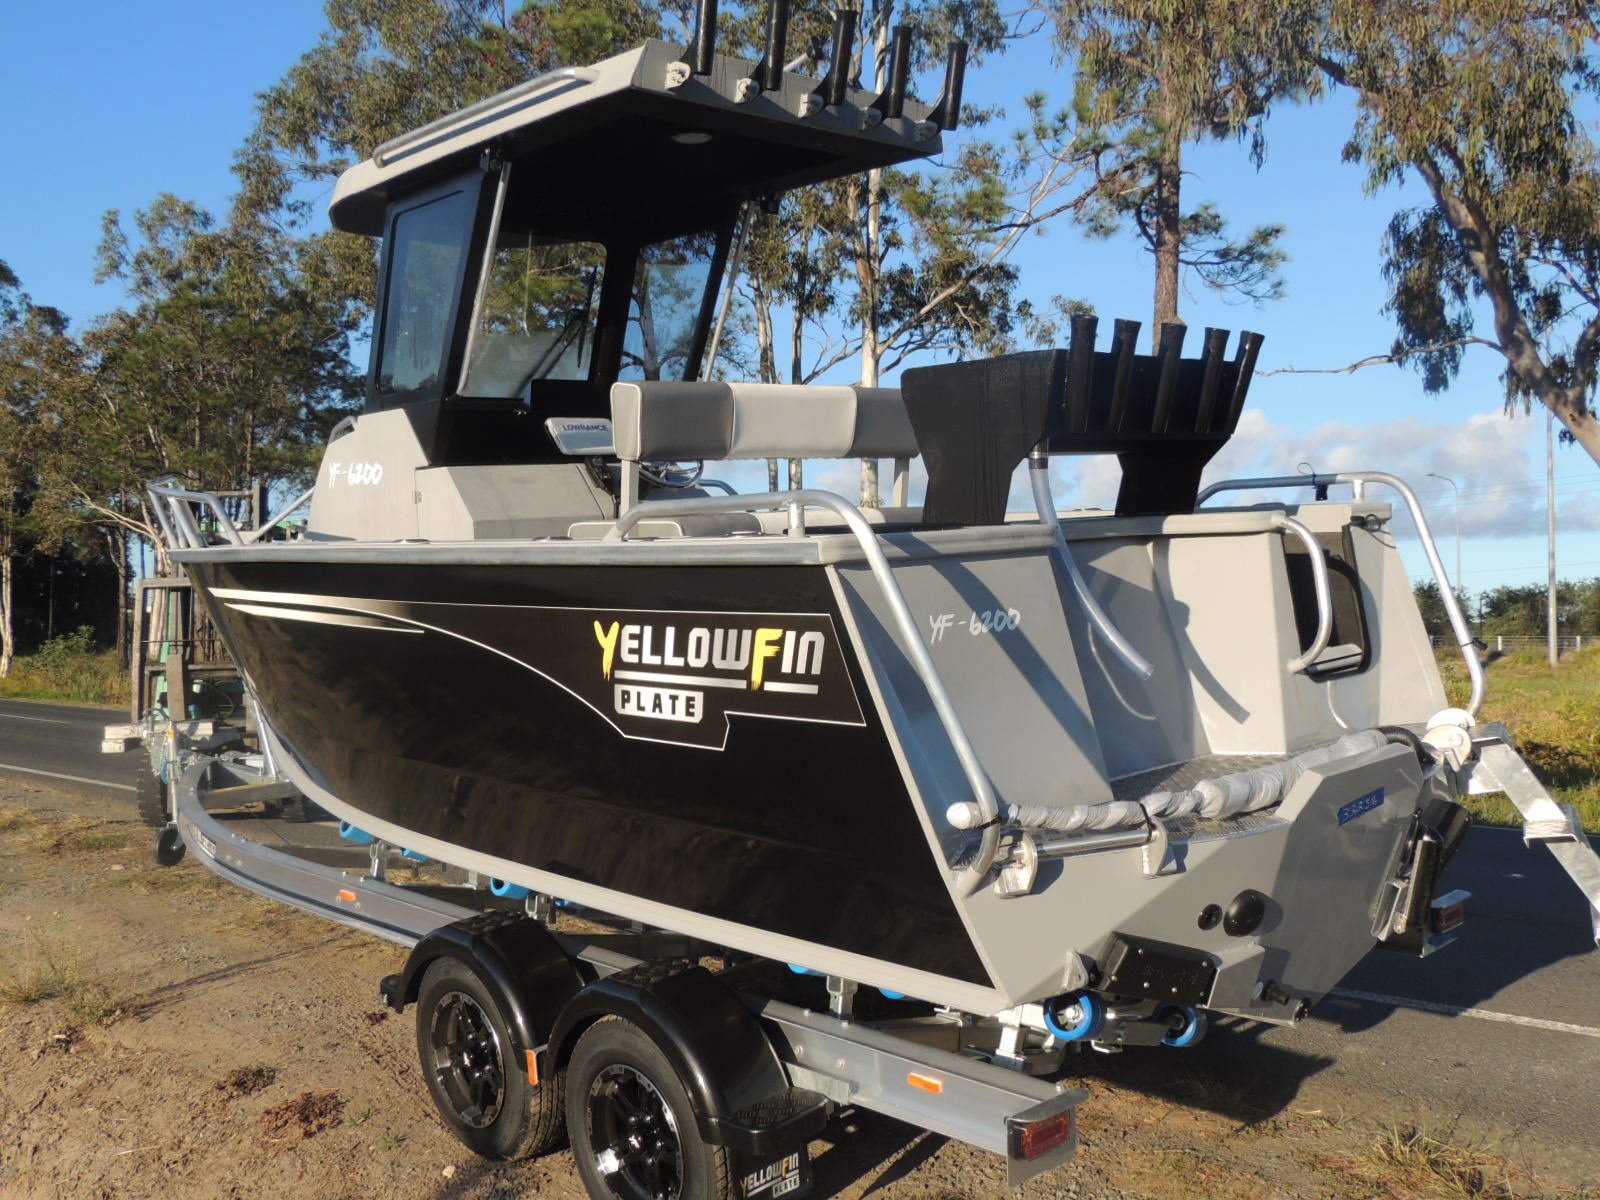 6200 Yellowfin Centre Cabin 150hp Pack 4 New Model